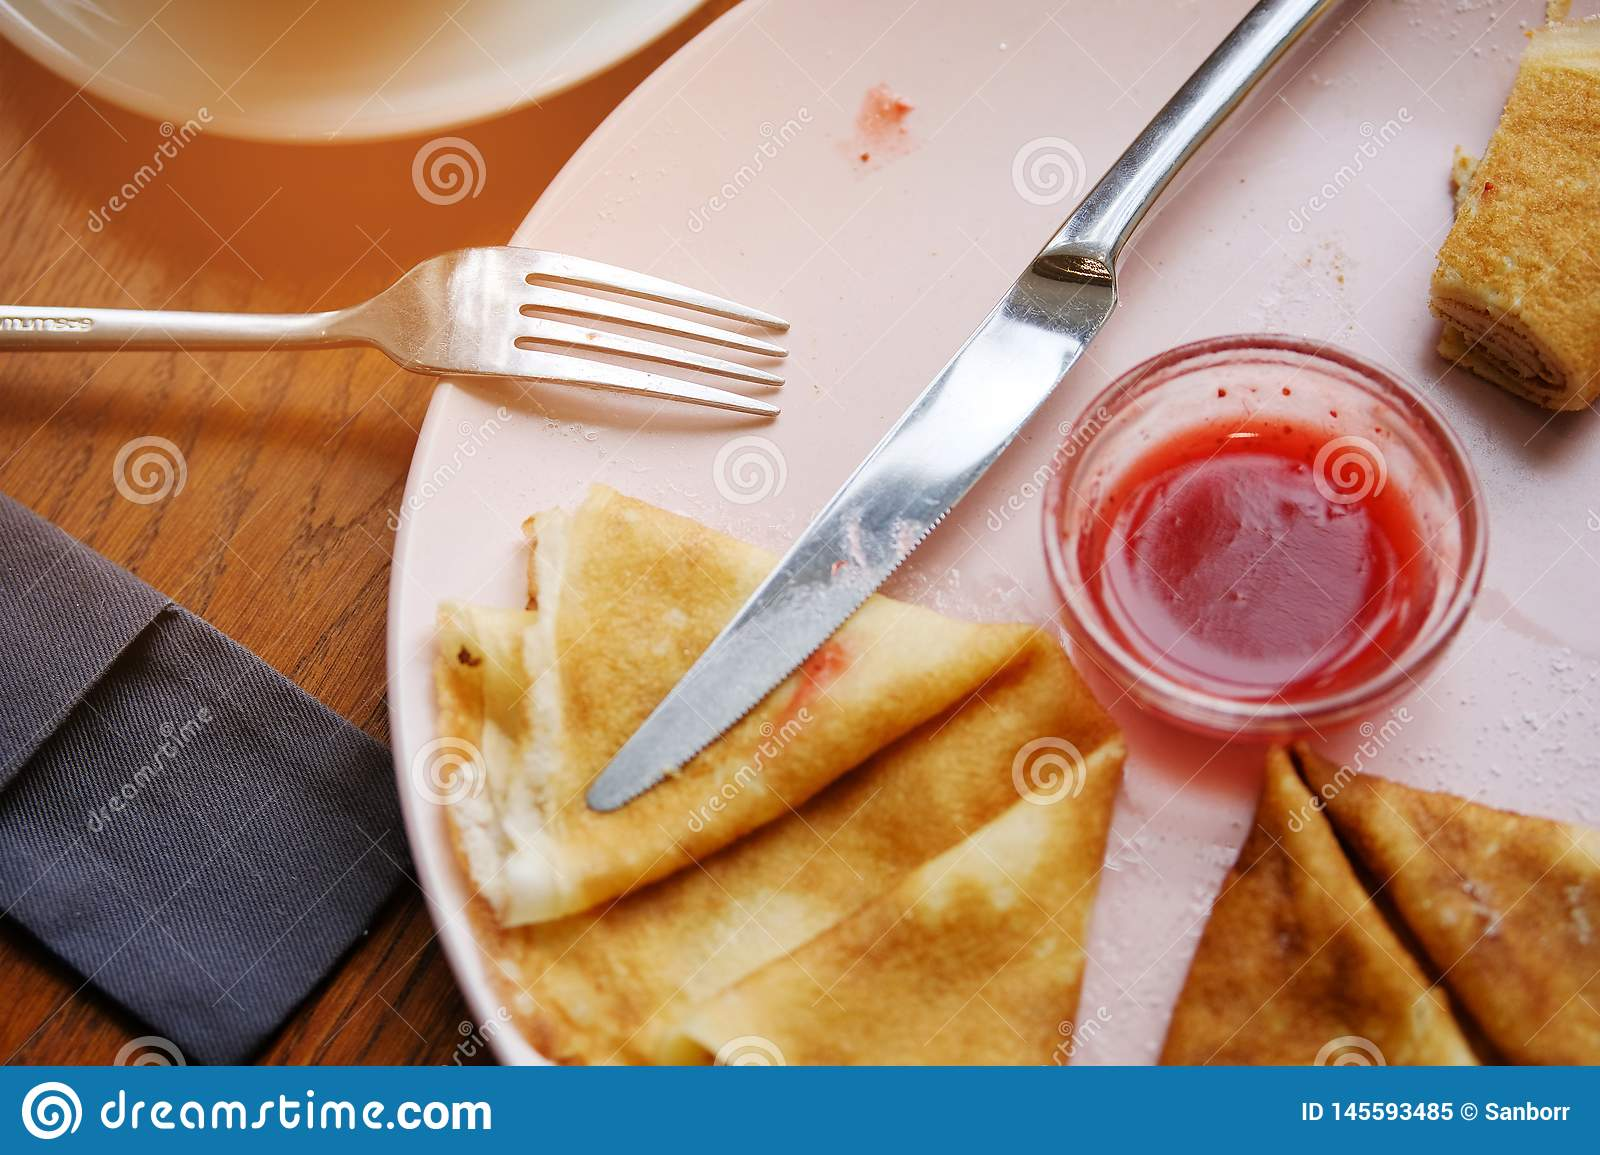 Pancakes with berry jam on a white plate on a wooden background. Near a fork and knife. The concept of food.